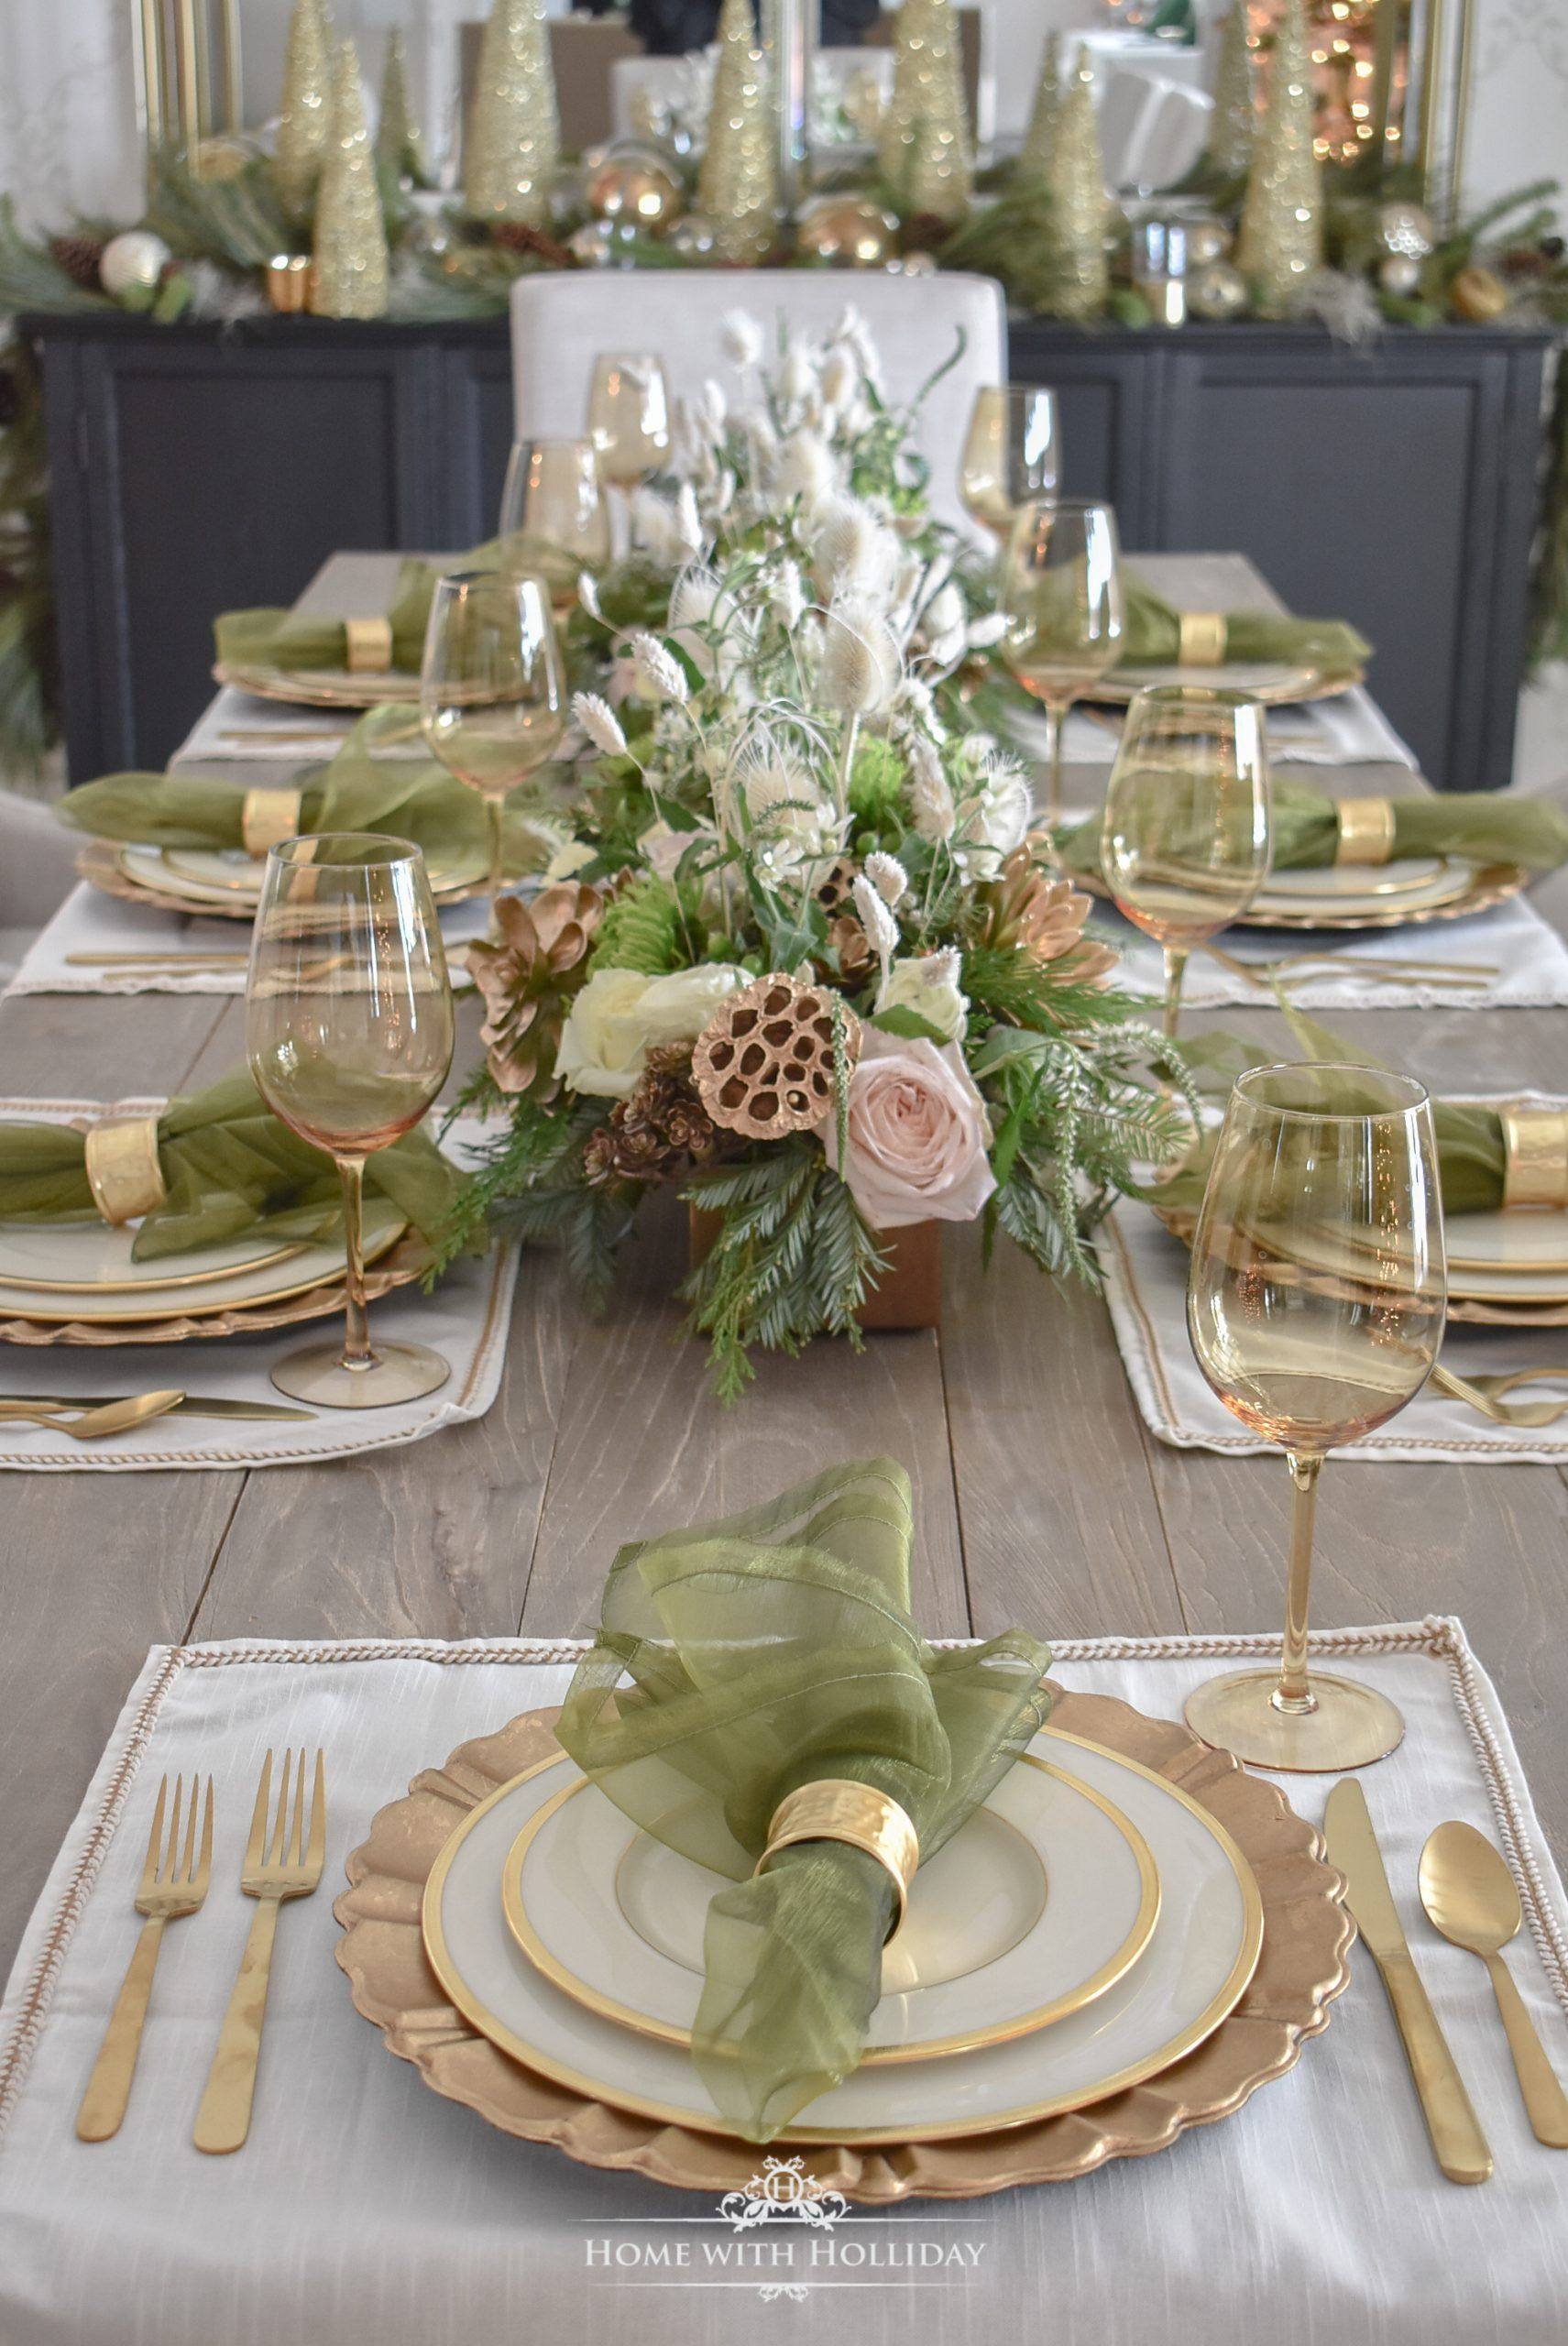 Christmas Tablescape 2020 Elegant Green and Gold Christmas Tablescape   Home with Holliday